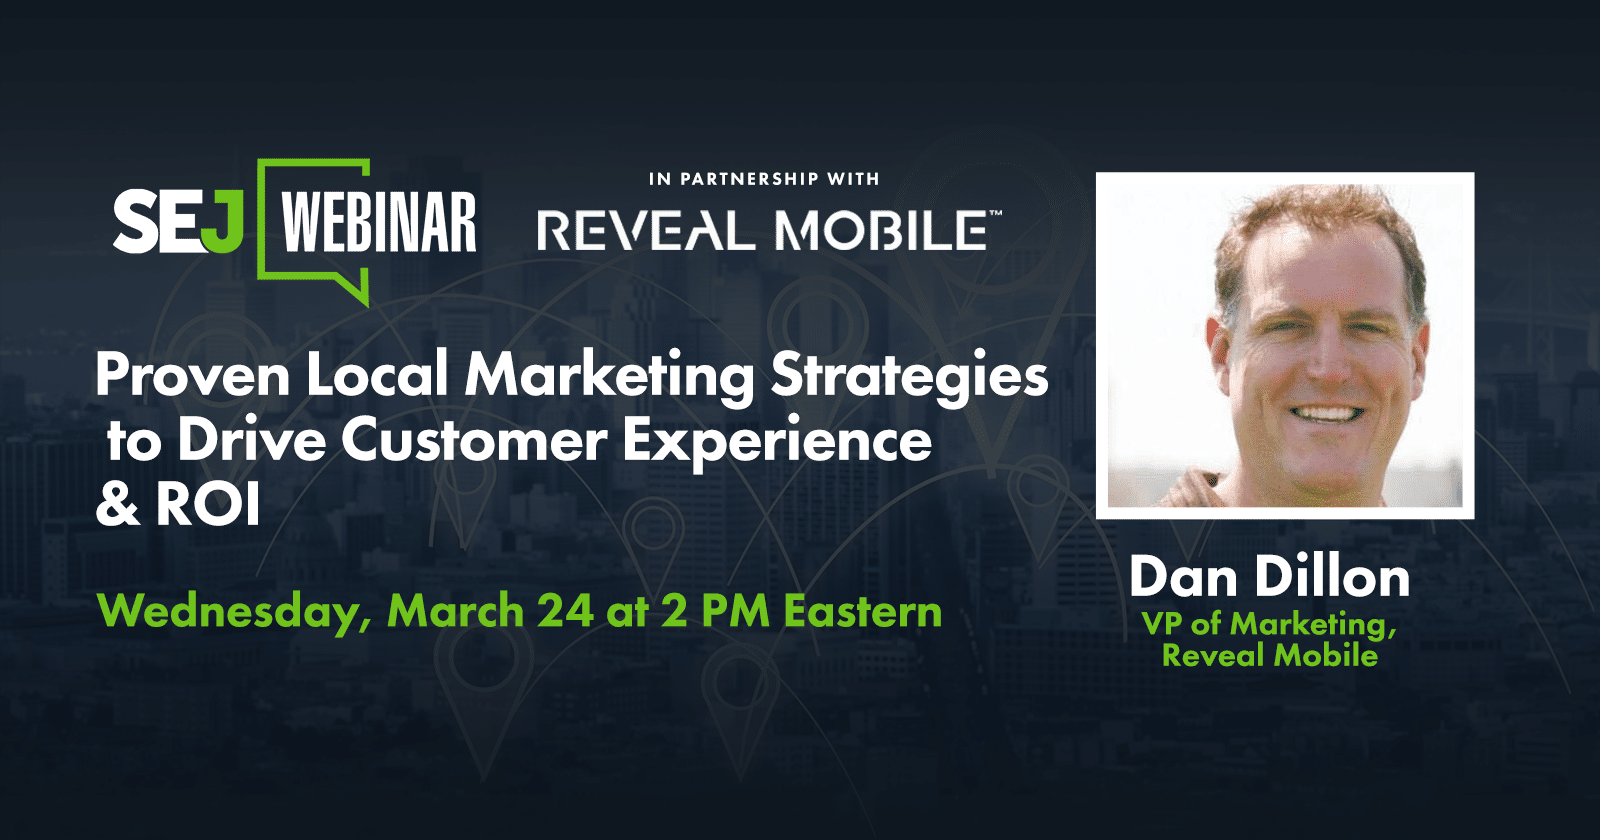 Proven Local Marketing Strategies to Drive Customer Experience & ROI [Webinar] via @lorenbaker